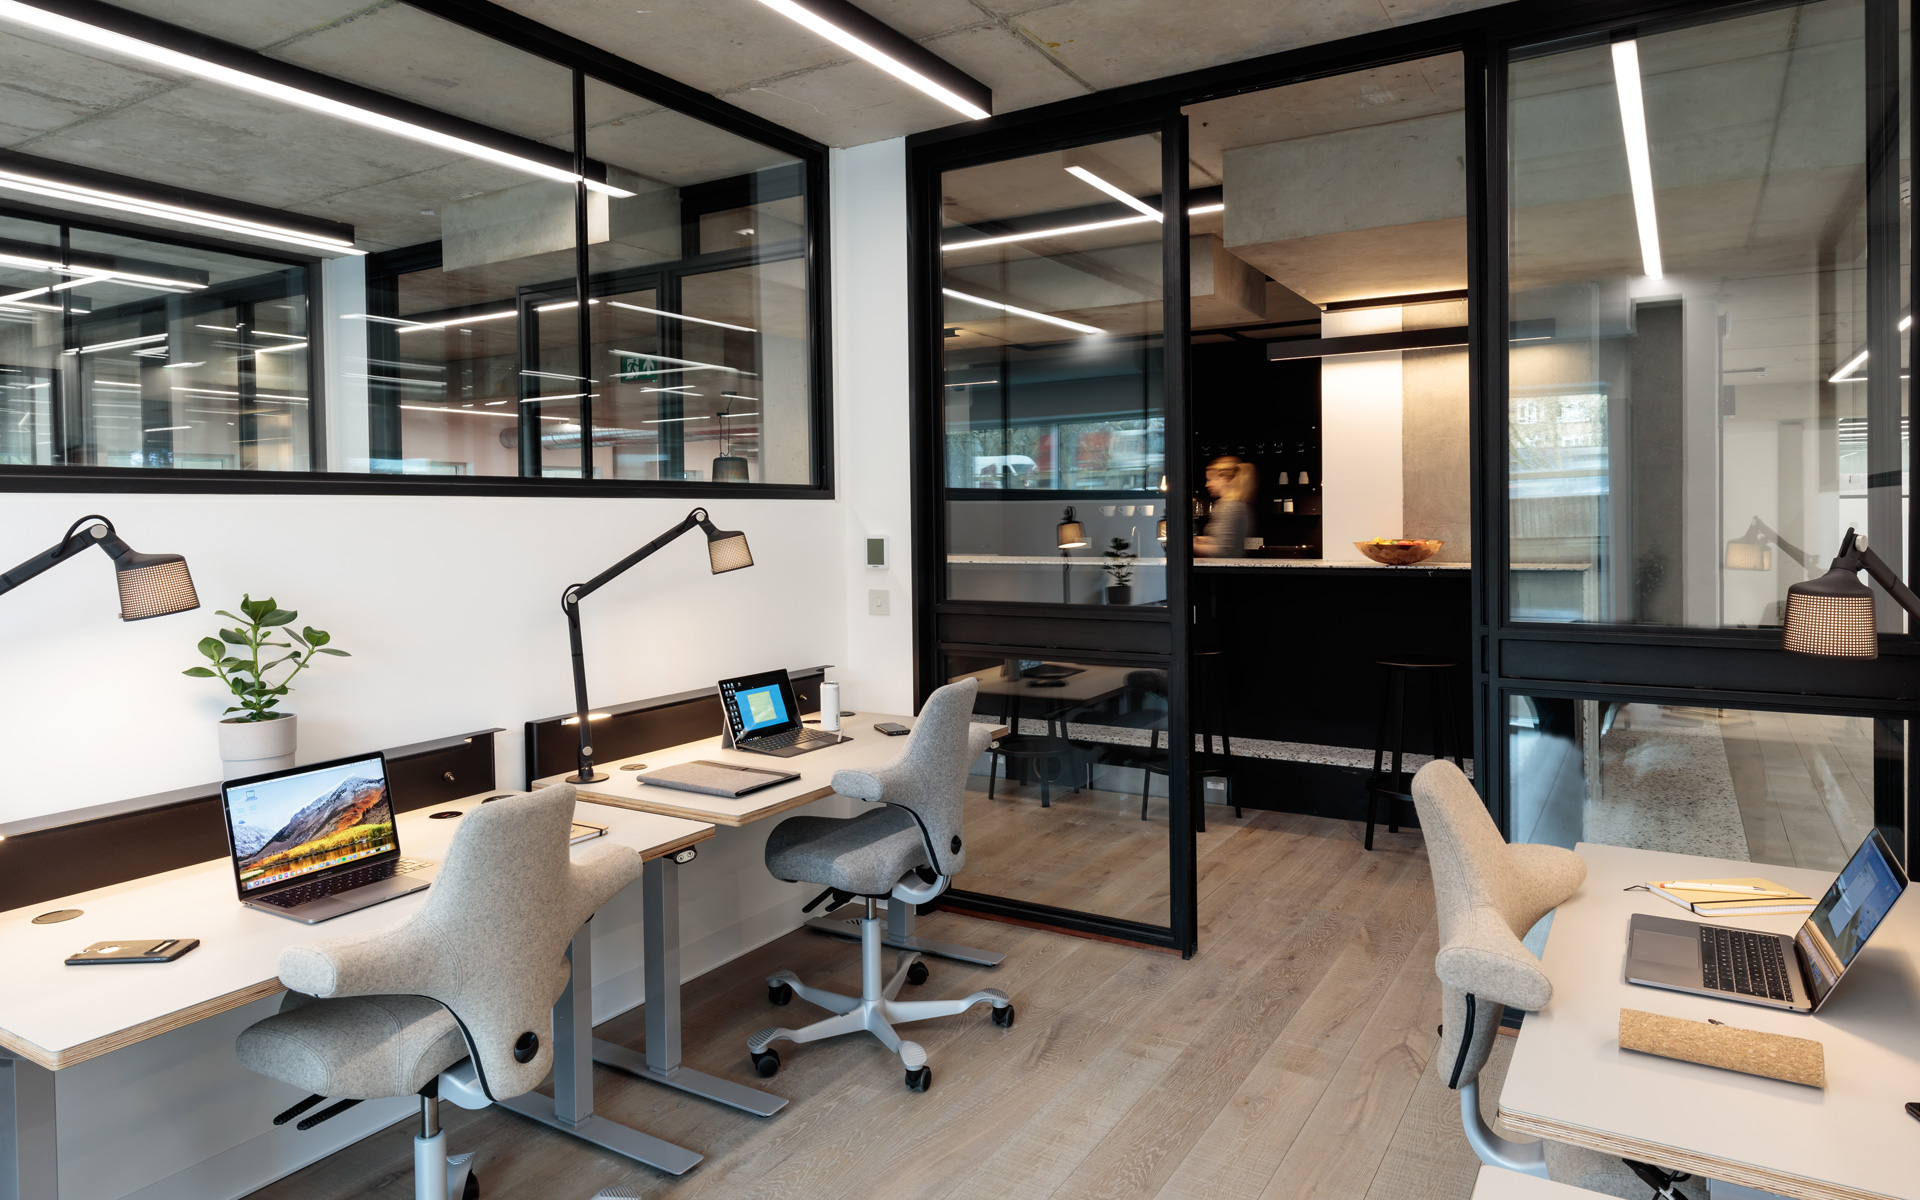 paddington_works_workspace__slider001